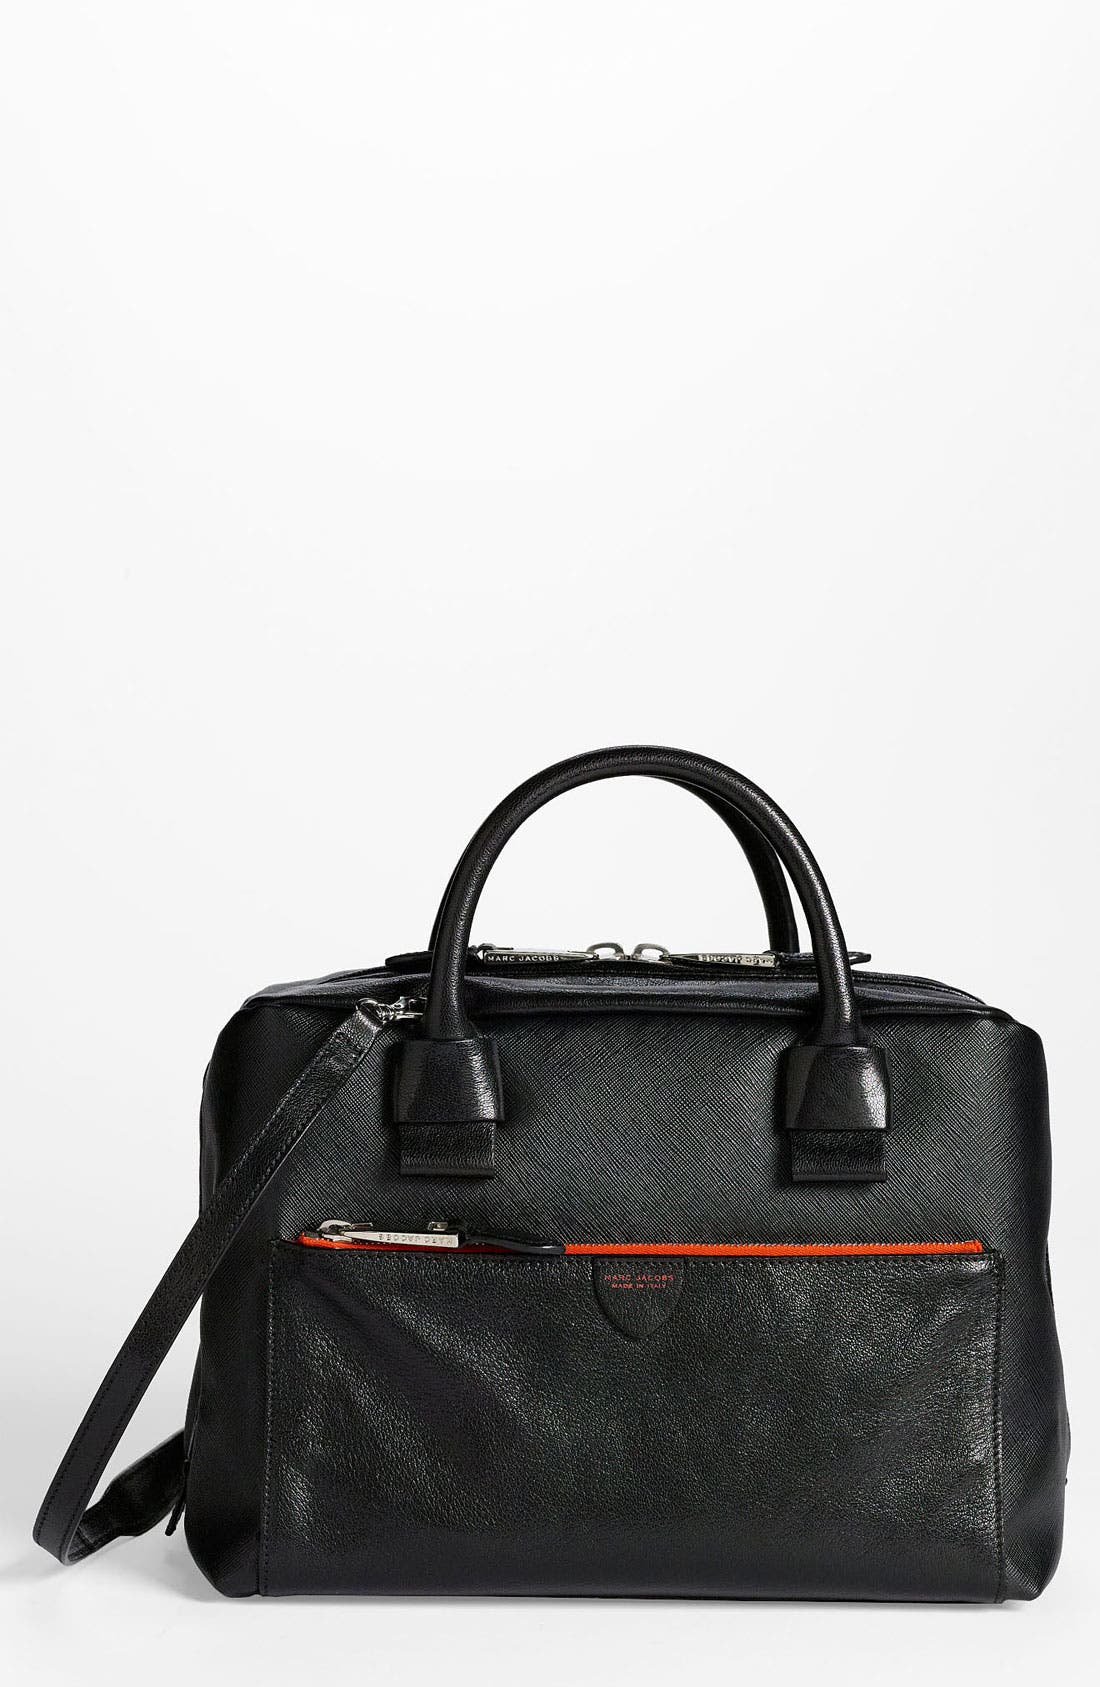 Alternate Image 1 Selected - MARC JACOBS 'Small Antonia' Leather Satchel